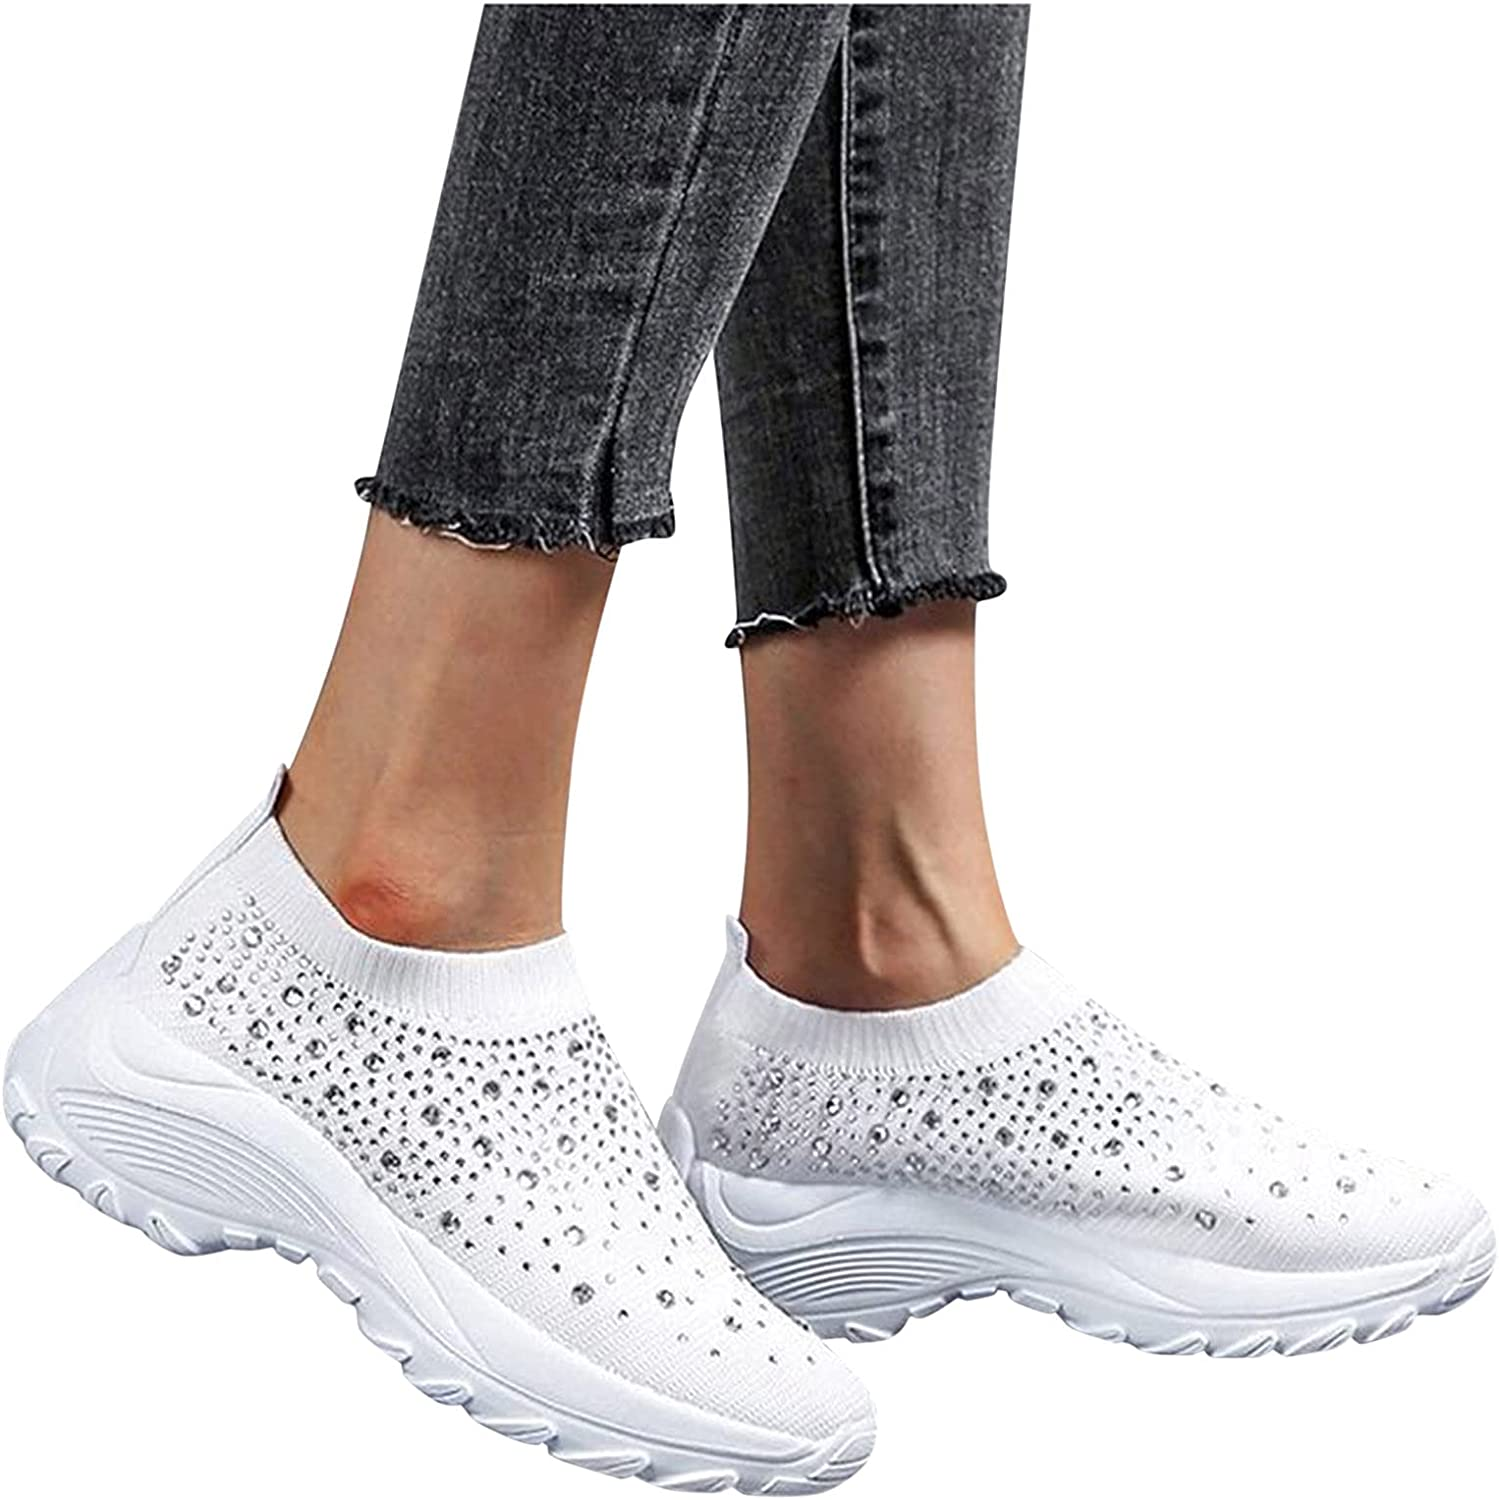 Gibobby Womens Sandals Sneakers for Women Slip On Running Shoes Mesh Breathable Sports Shoes Casual Summer Walking Shoes